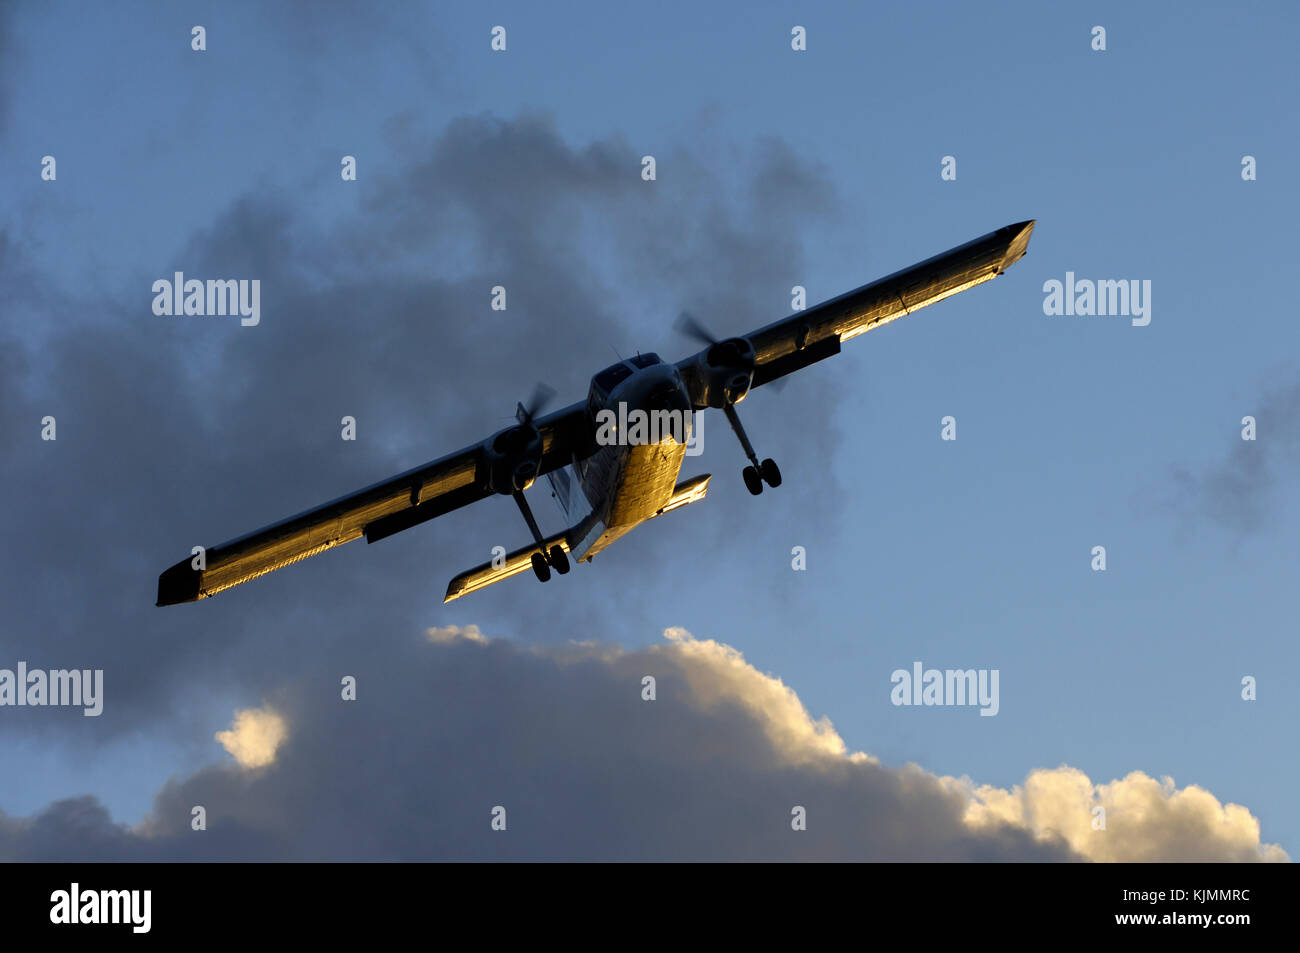 sun glinting off the fuselage and wings with dark clouds behind - Stock Image